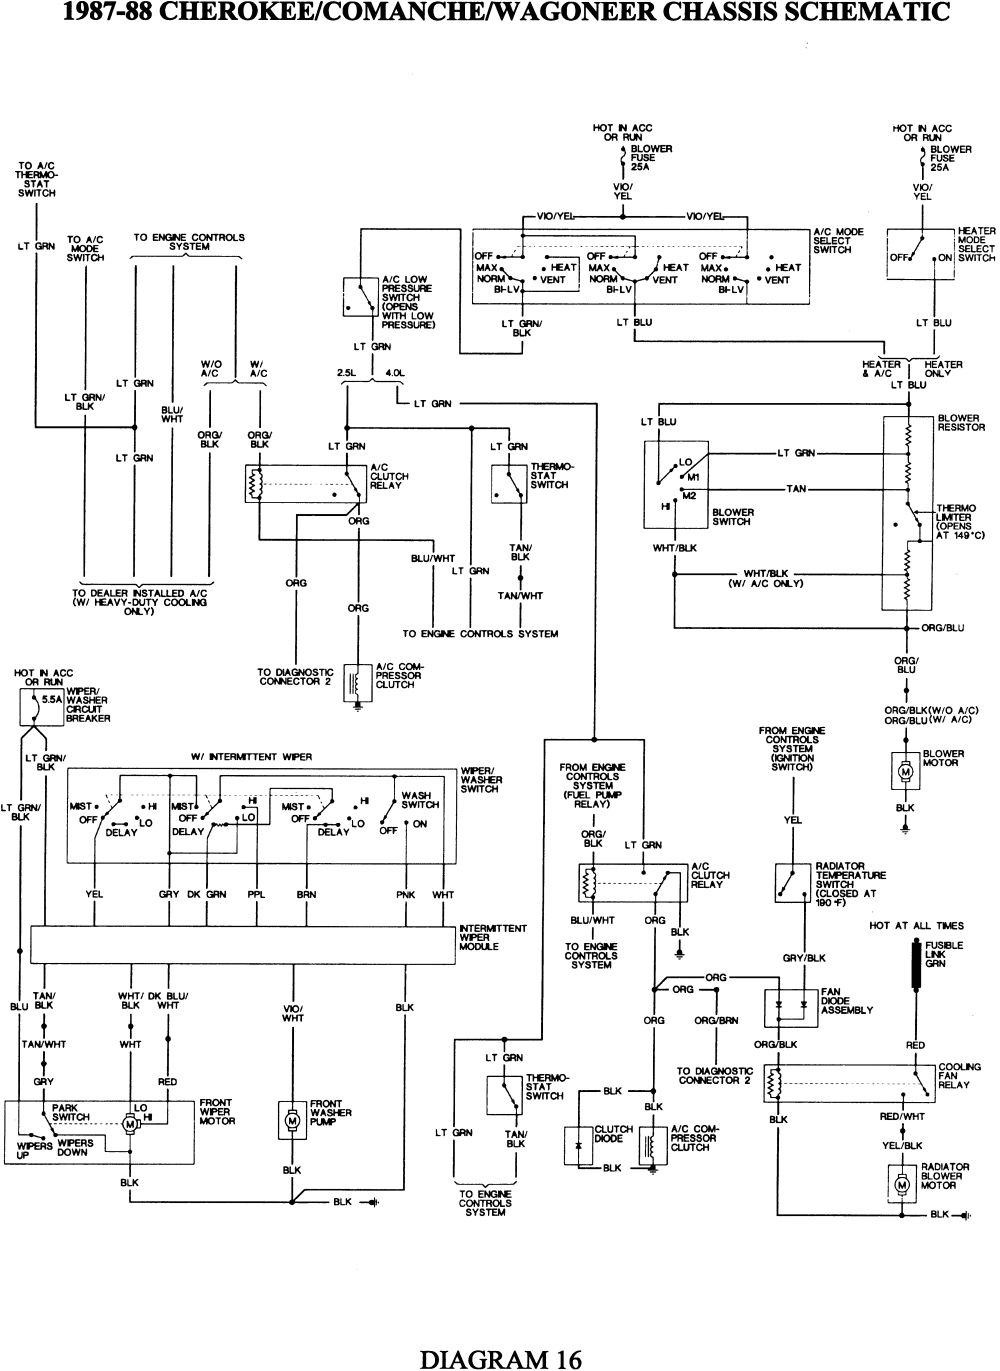 jeep wj ignition wiring wiring diagram files 1999 jeep grand cherokee ignition wiring diagram 1999 jeep cherokee ignition wiring diagram